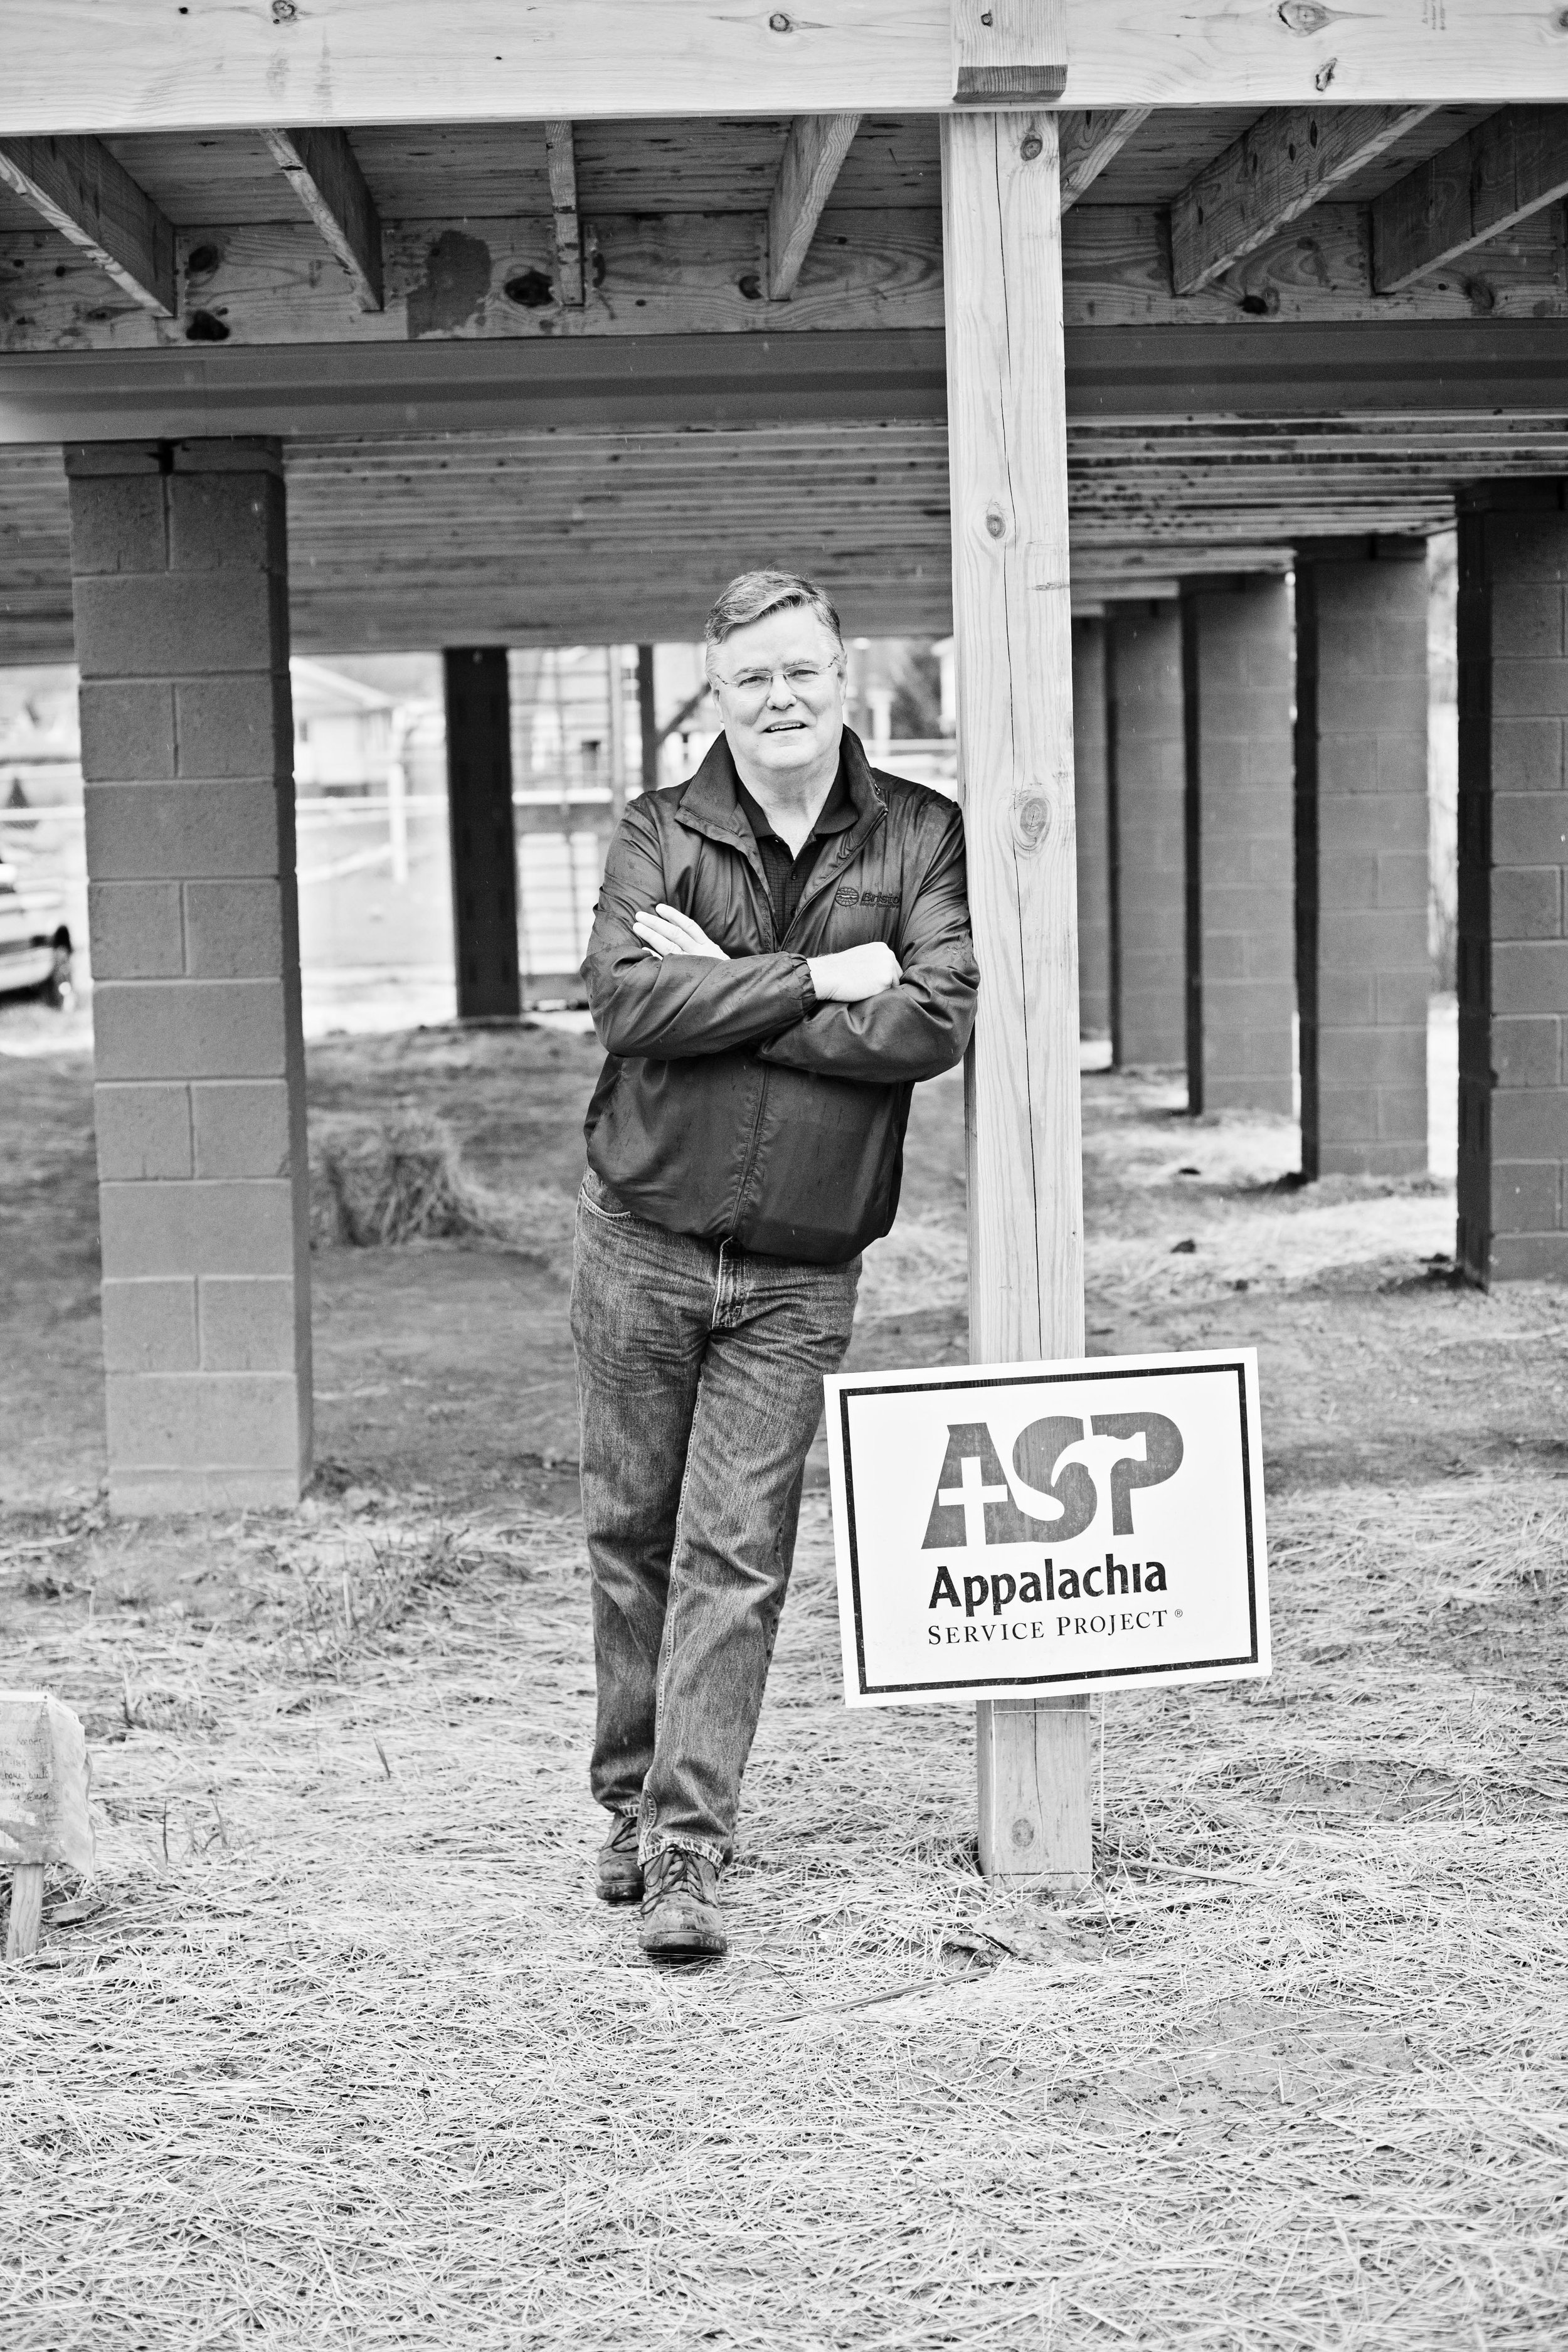 """52 - Walter Crouch, President and CEO of Appalachia Service Project (ASP), has been a leading force in the rebuilding of Rainelle over the past year, having already put 23 homes under roof since the flood, and another 29 ready to go, bringing the total to 52 homes. Since 1969, ASP has brought thousands of volunteers from around the country to rural Central Appalachia to repair homes for low-income families, making them """"warmer, safer, and drier."""""""